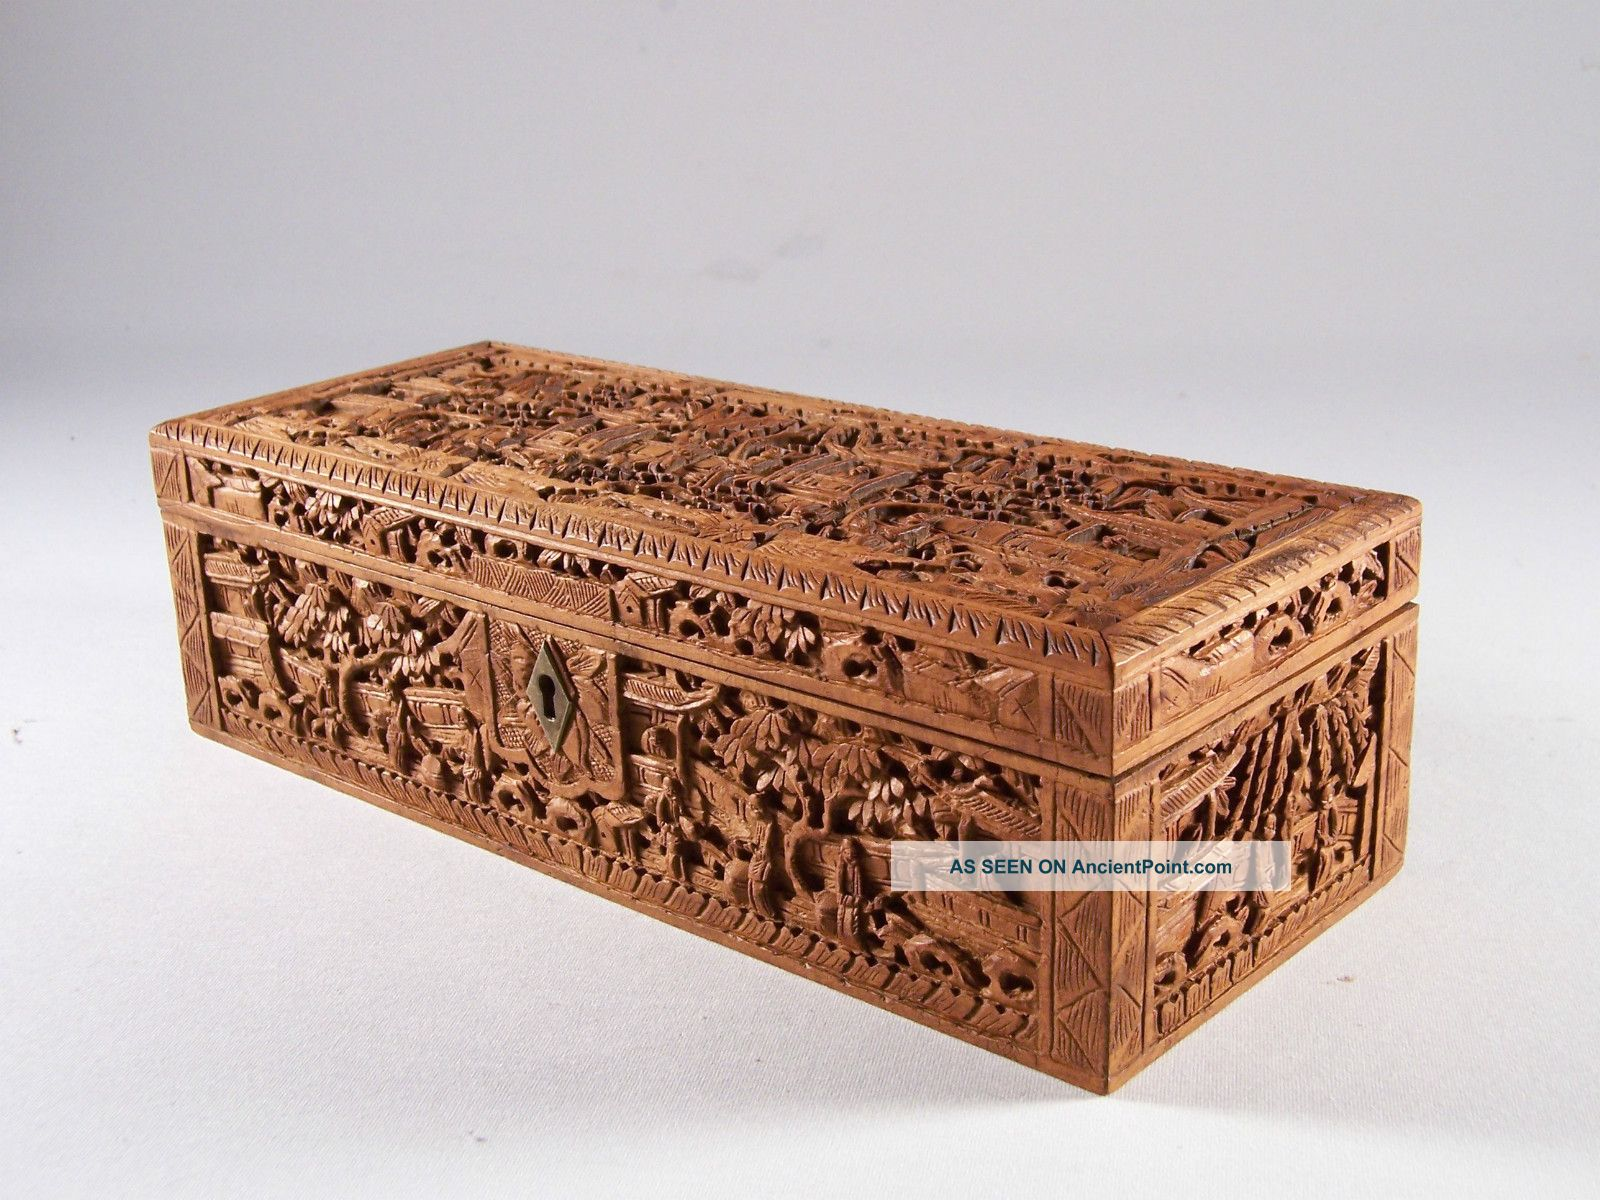 19c Chinese Cantonese Export Sandalwood Figural Box Carved In Deep Relief Boxes photo